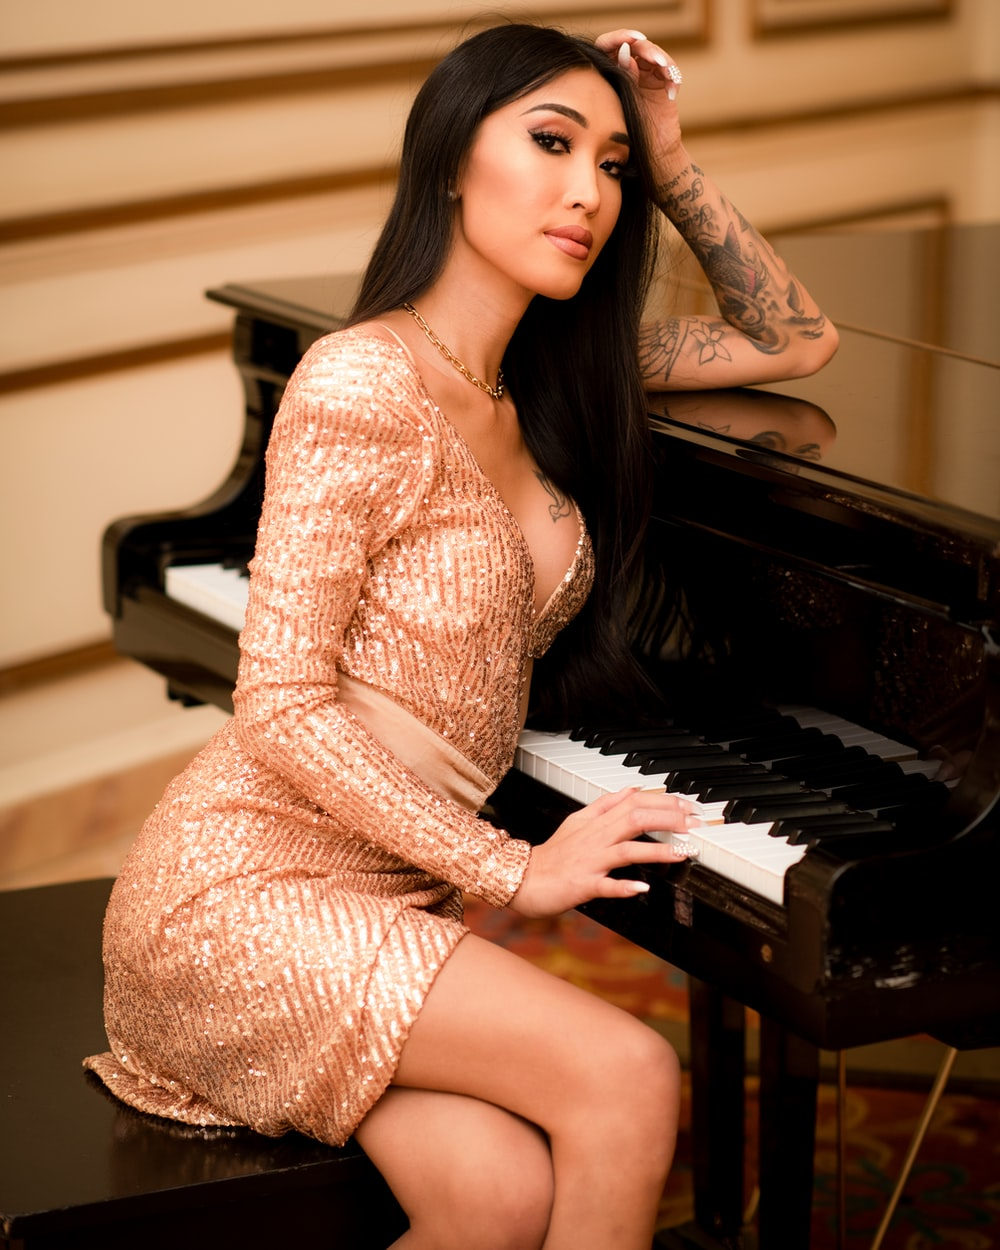 woman in white and brown dress sitting on piano